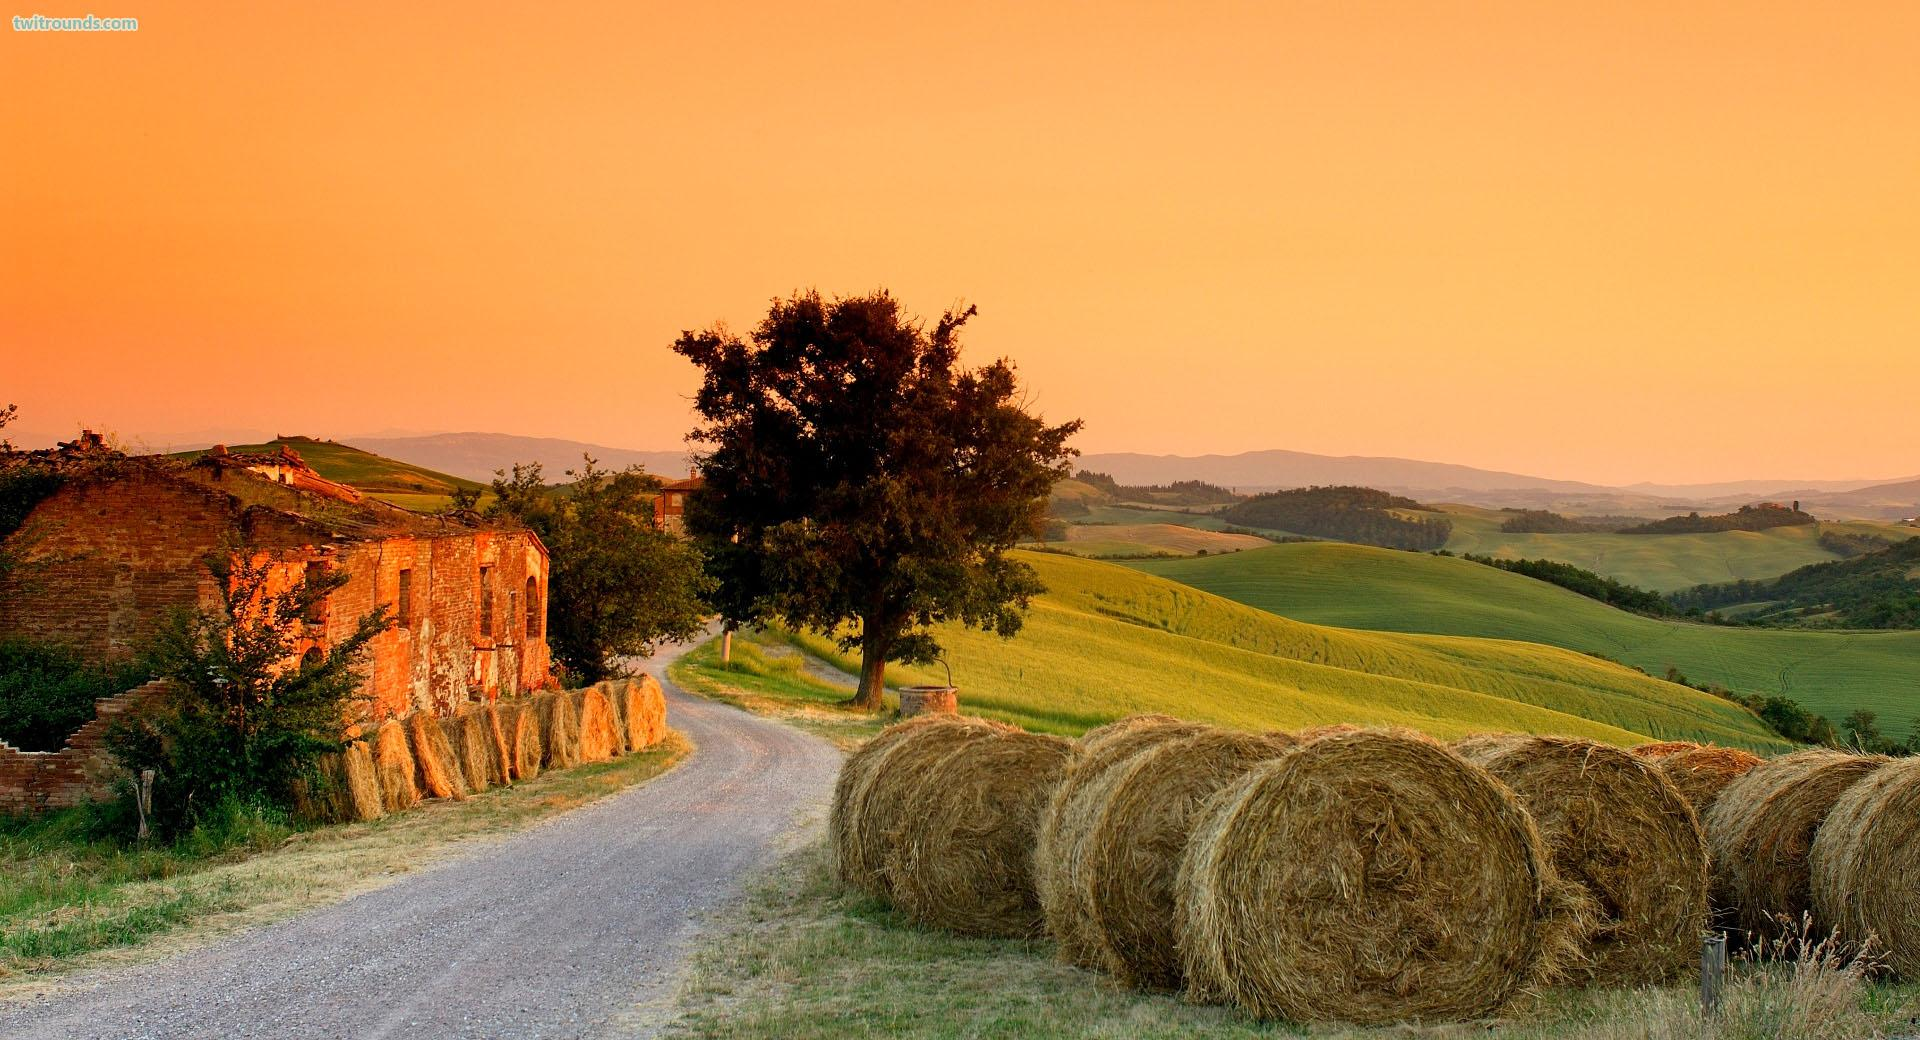 Tuscany Wallpaper for Desktop - WallpaperSafari